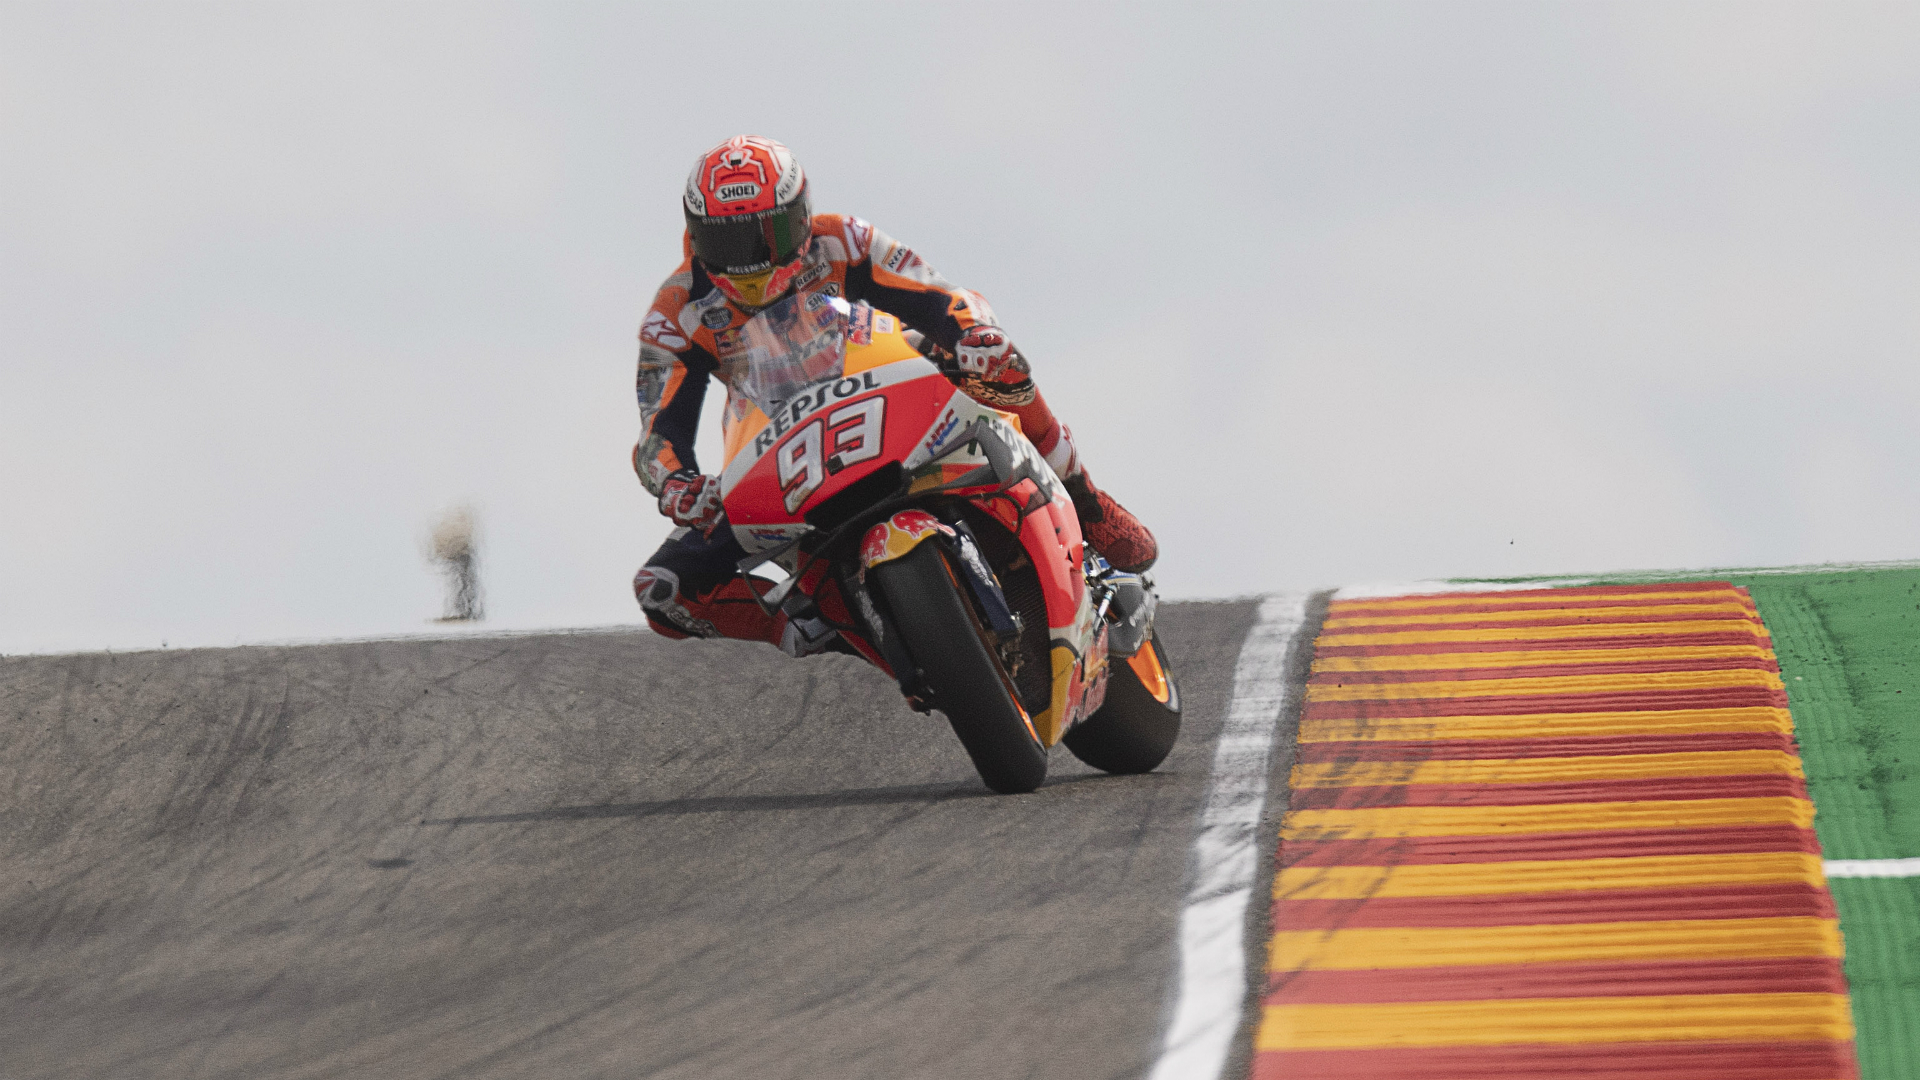 Marc Marquez thrilled the Spanish crowds as he closed in on a sixth MotoGP title with an emphatic win at Aragon in his 200th grand prix.